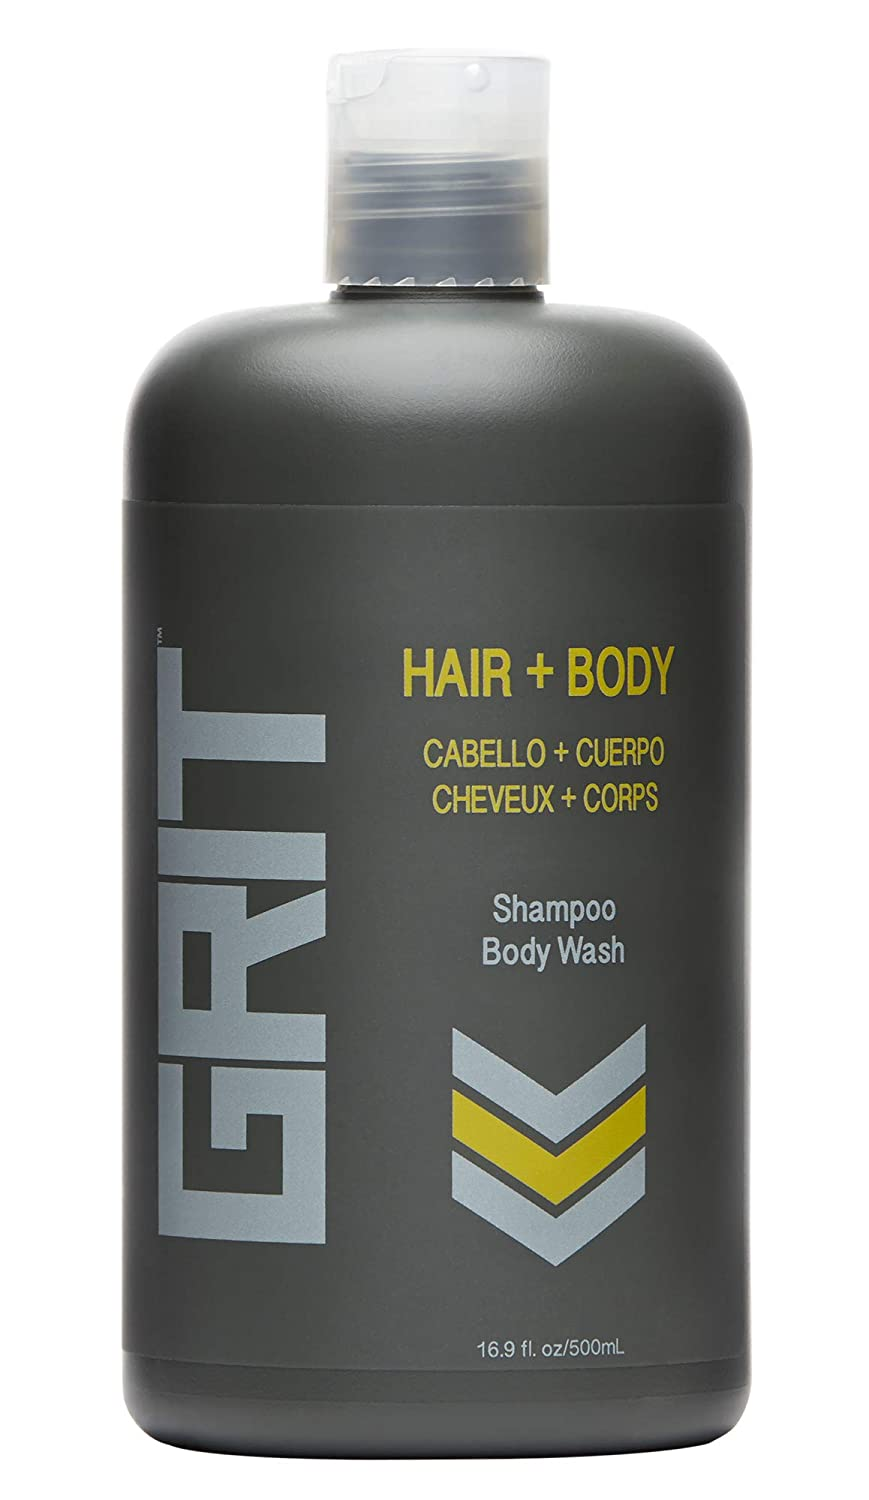 In a popularity Japan Maker New GRIT Hair Body 16.9oz Shampoo 3-in-1 Conditioner Wa